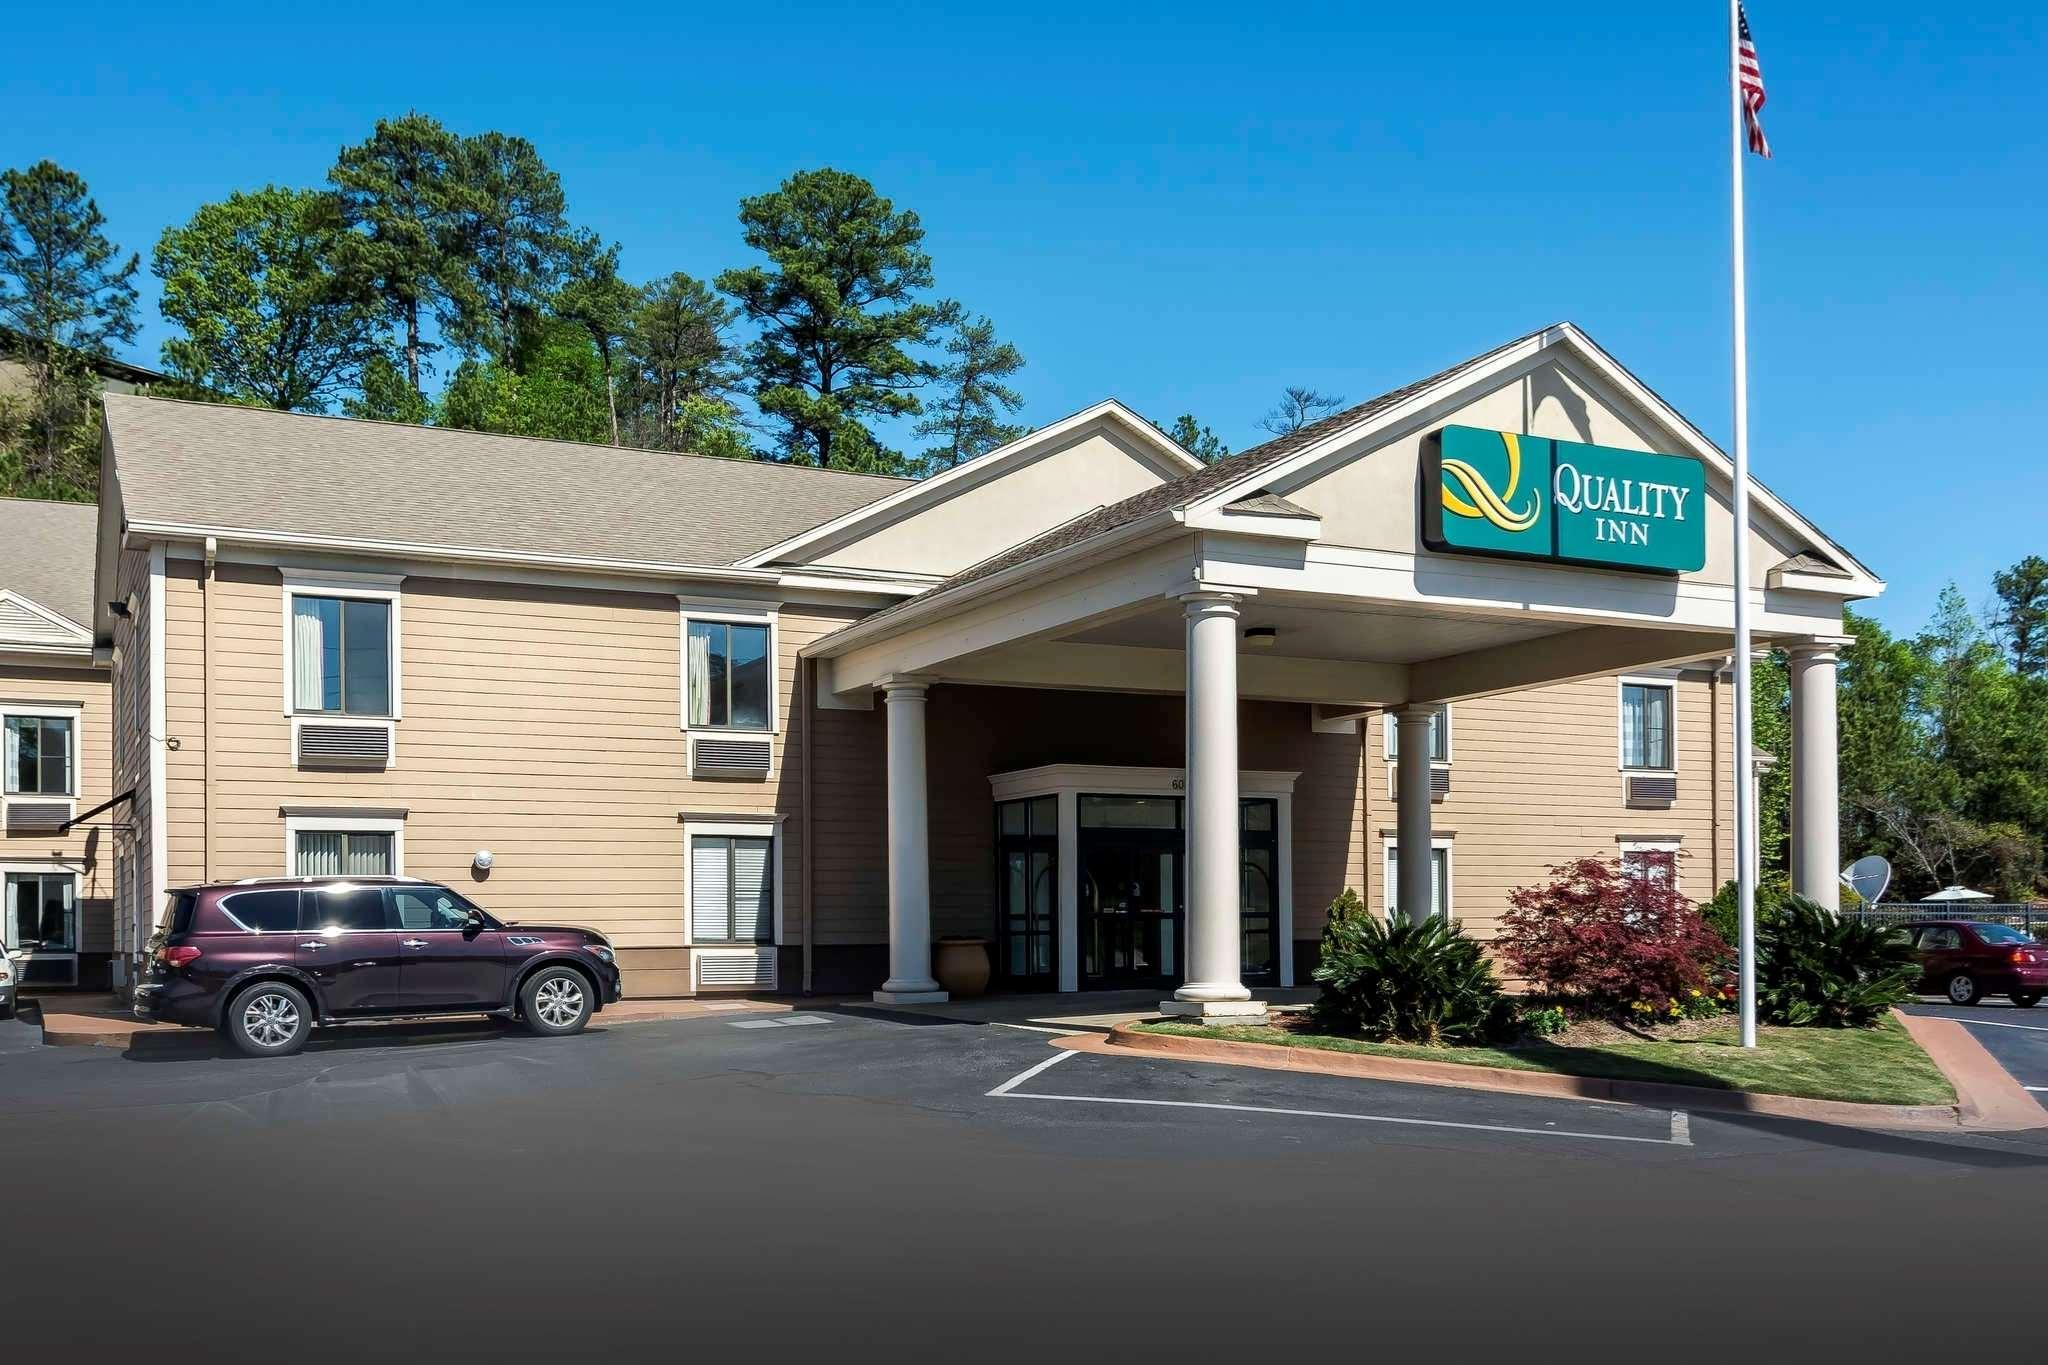 Quality Inn Phenix City Columbus, Russell